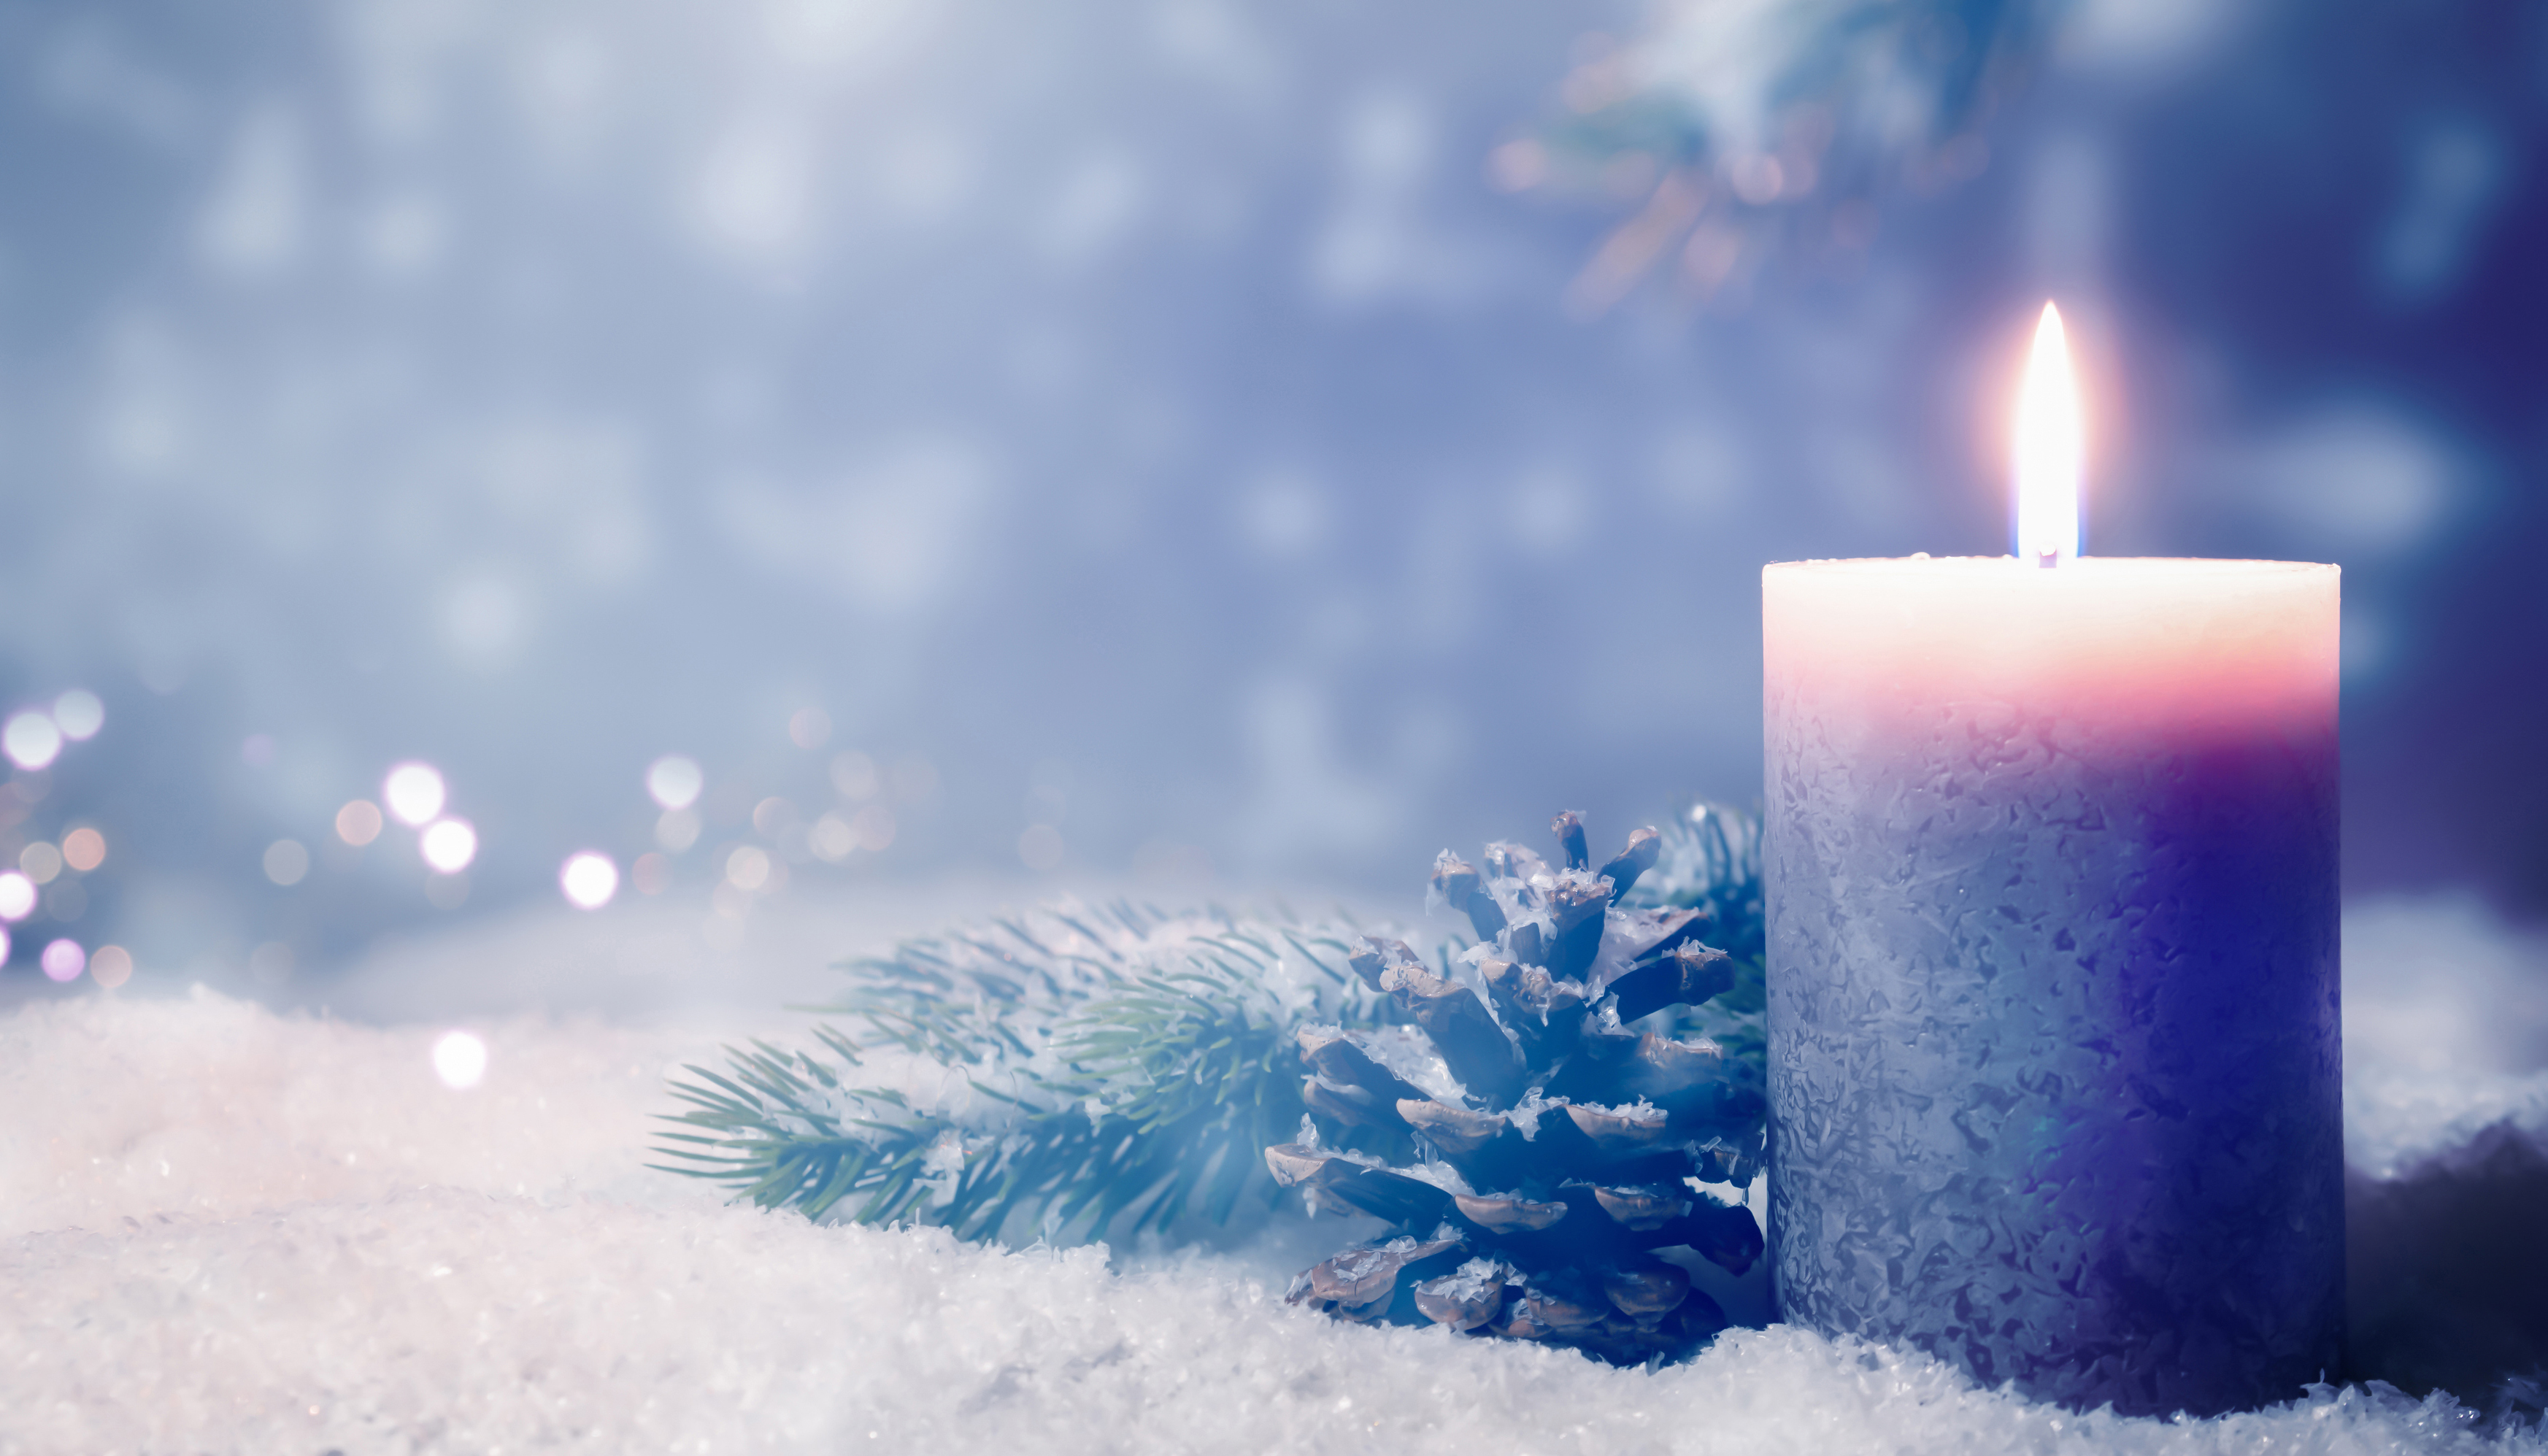 stock photo of candle and snowy pine cone